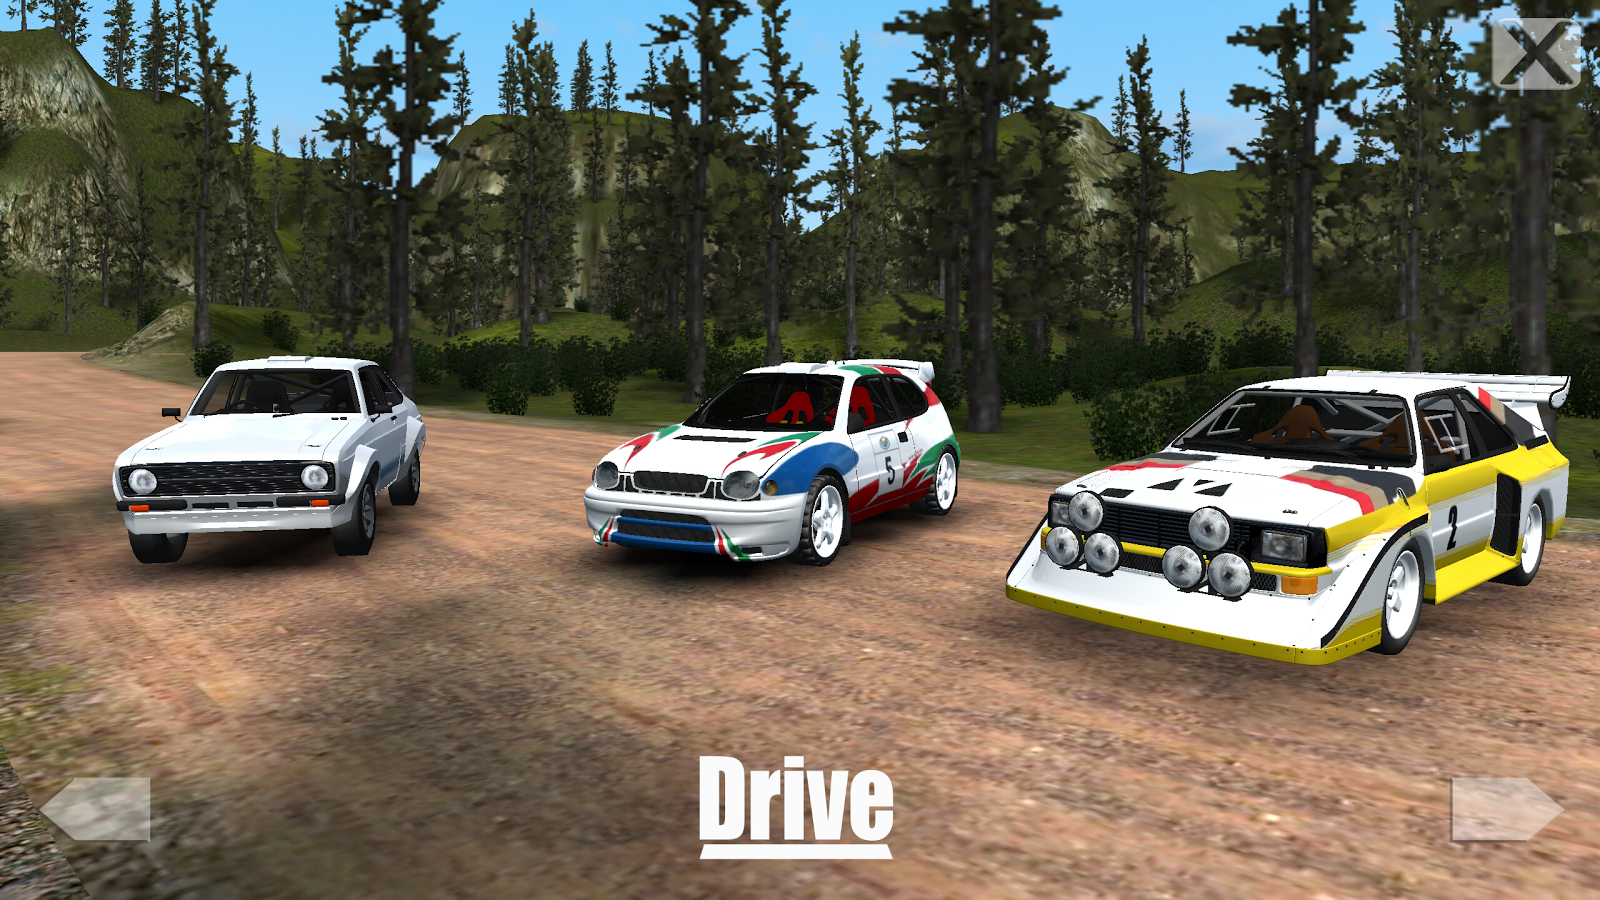 Drive Sim Screenshot 1